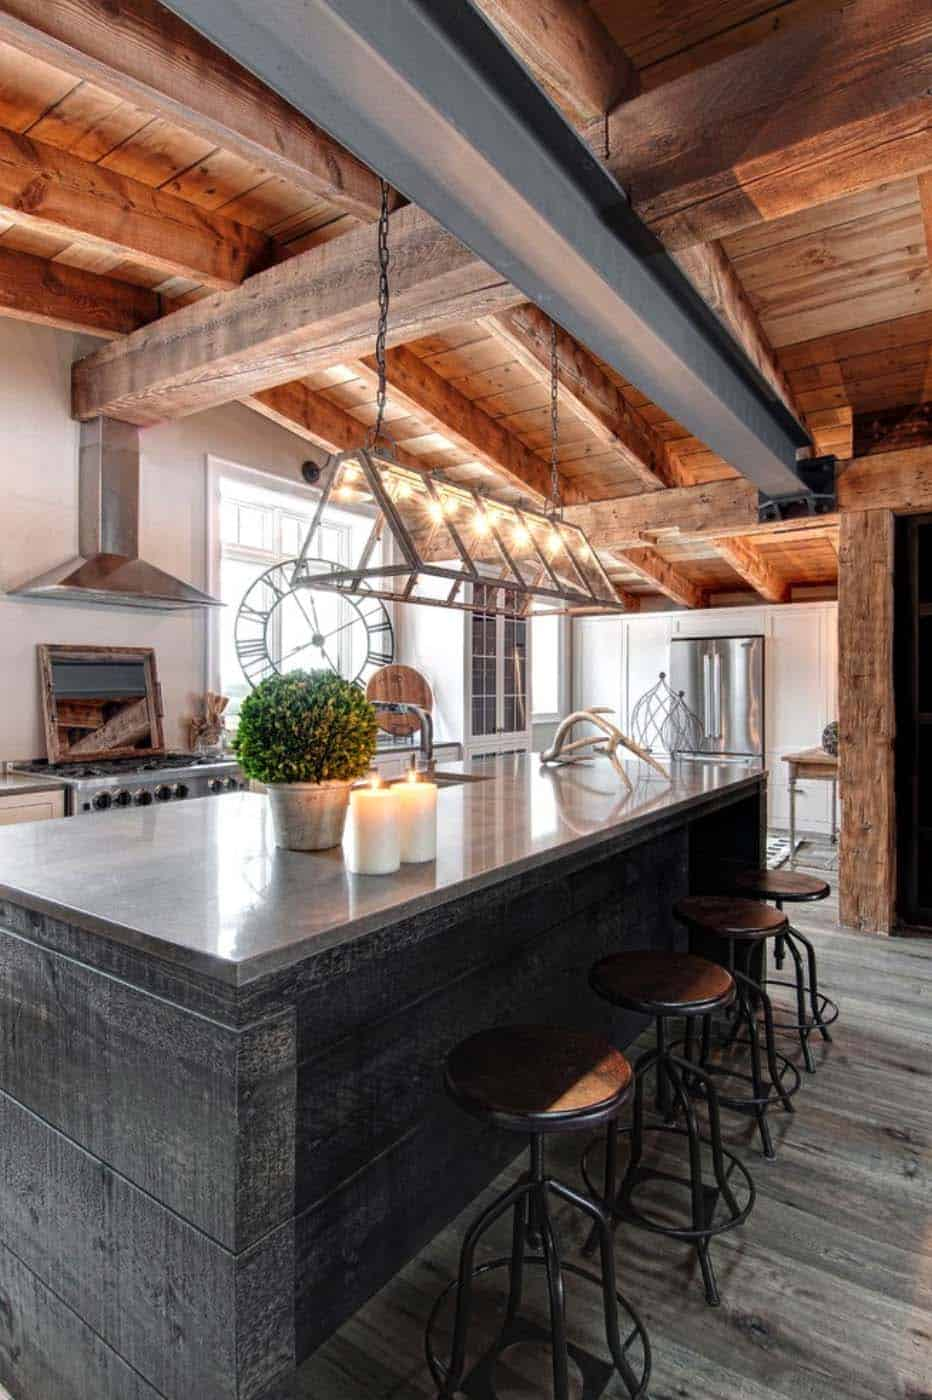 Luxury canadian home reveals splendid rustic modern aesthetic for Home design kitchen decor